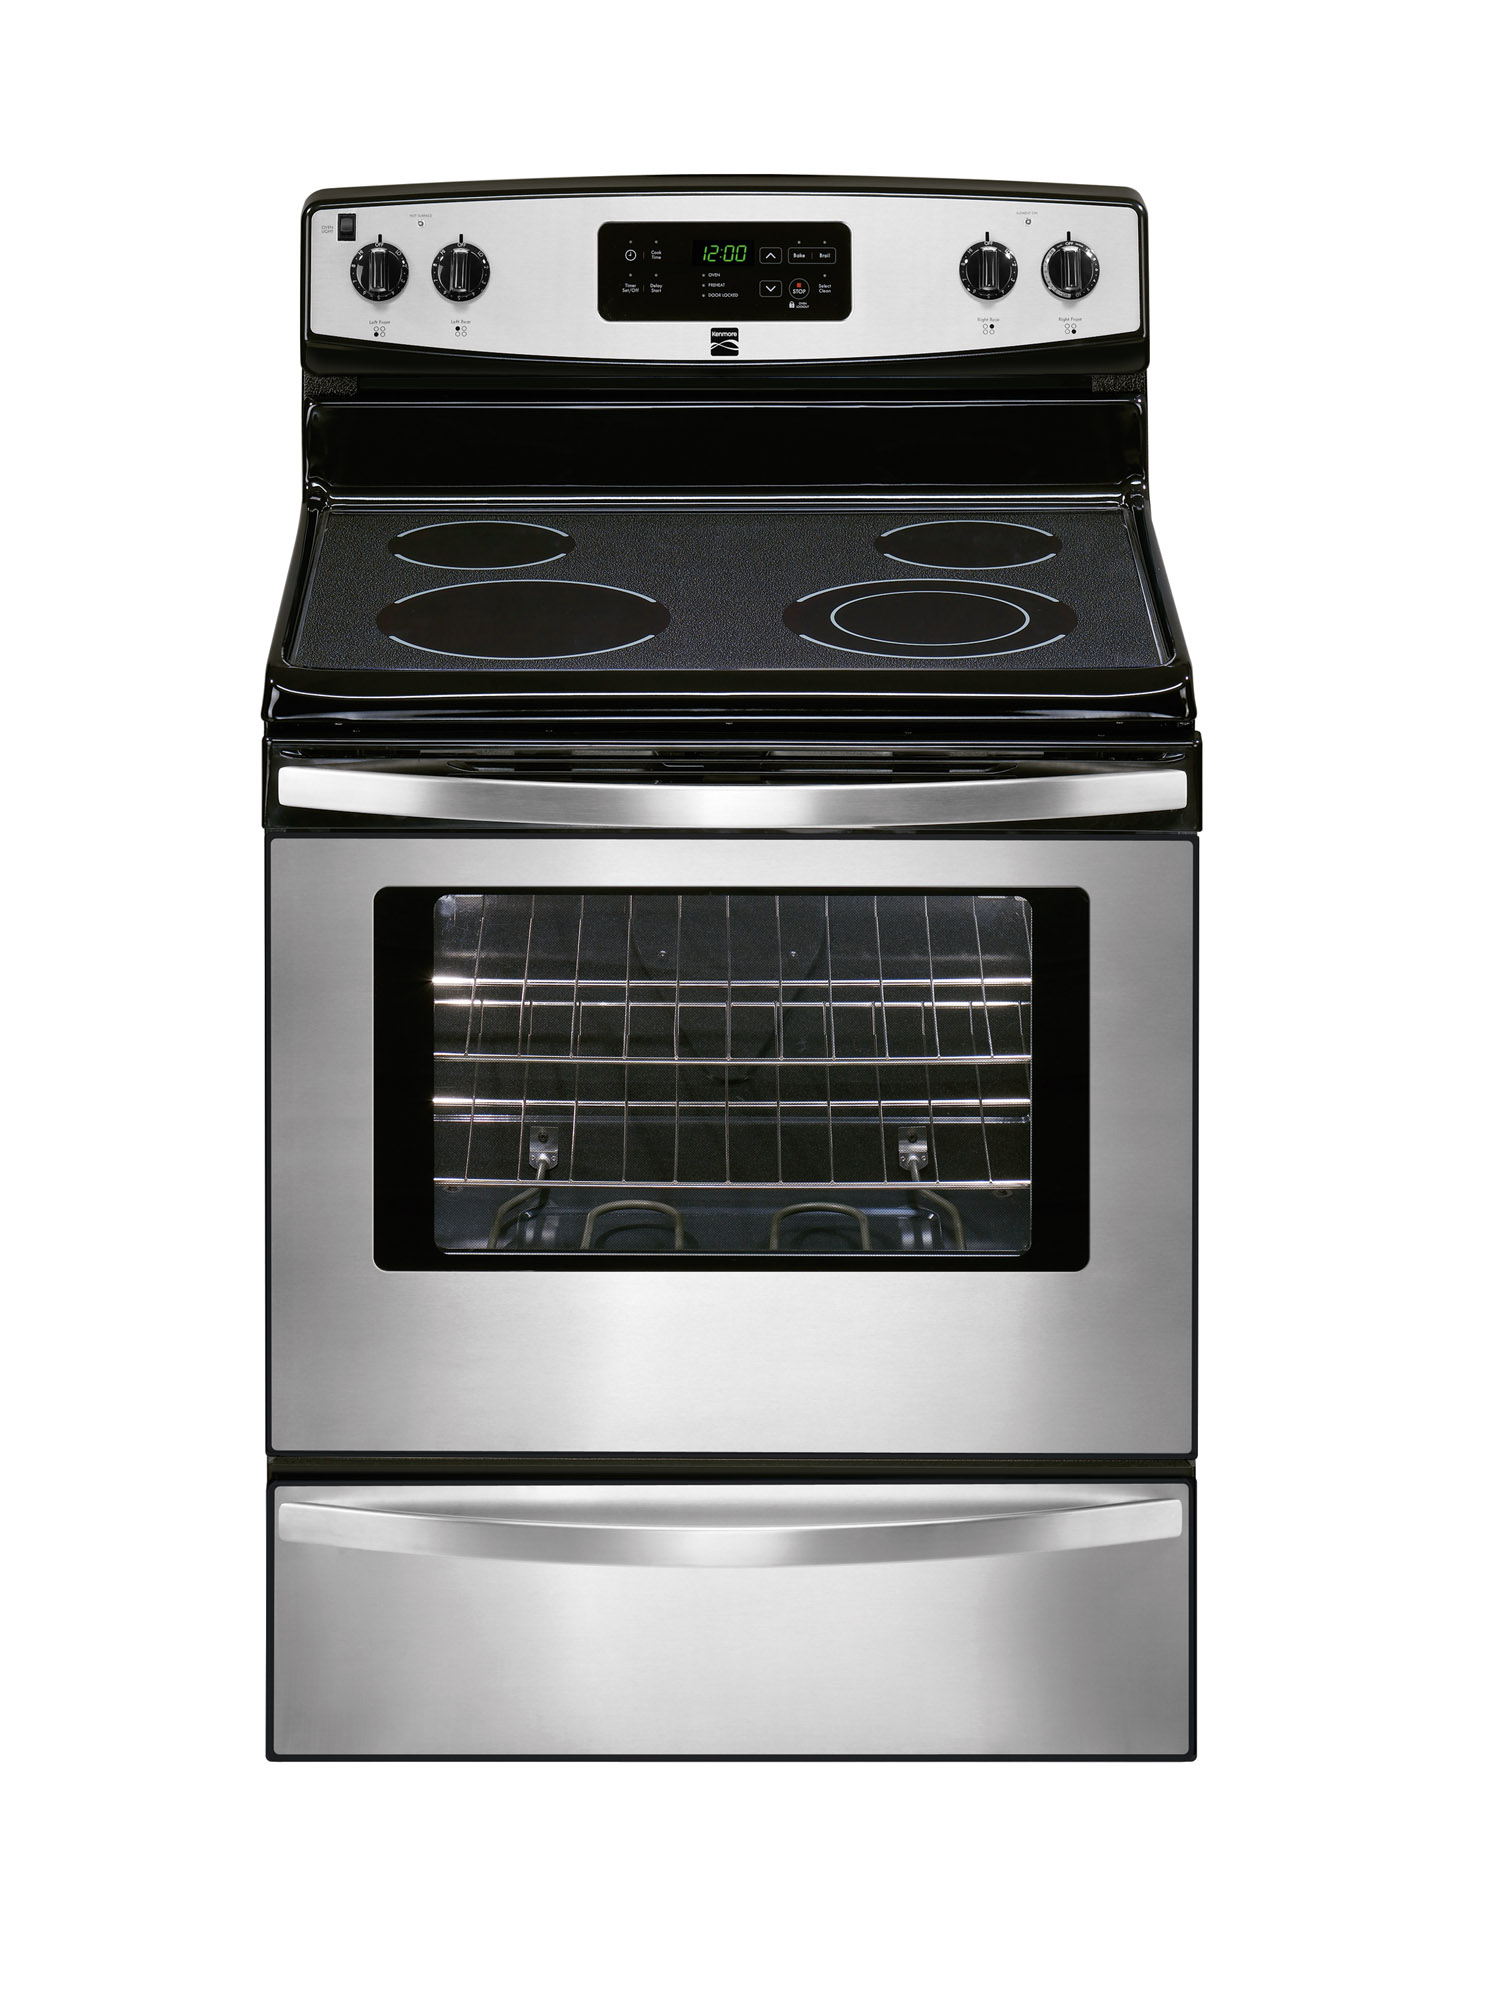 Kenmore Range Stove Oven Model 790 92203014 Parts And